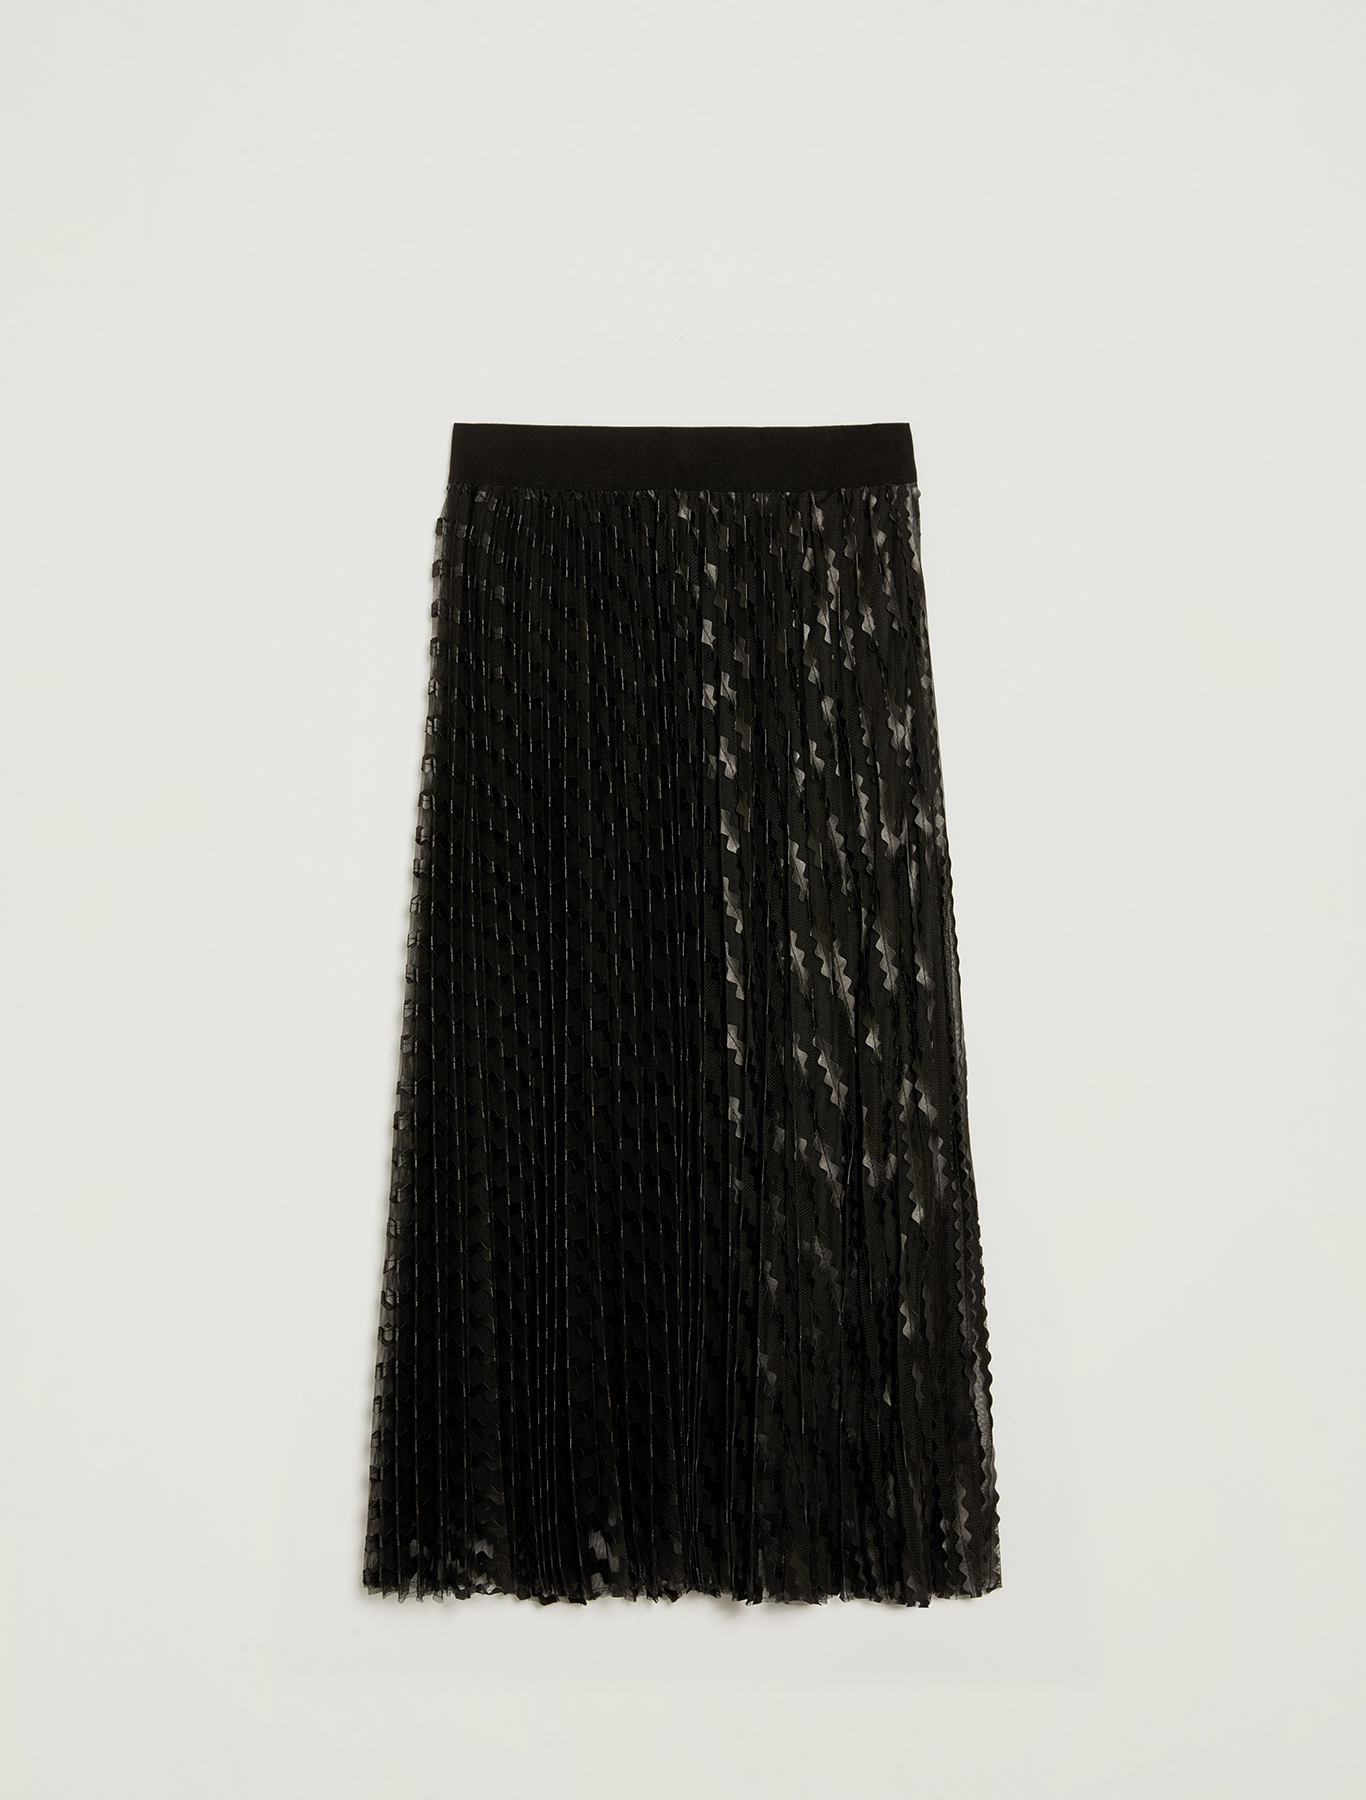 Tulle skirt with appliqués - black - pennyblack